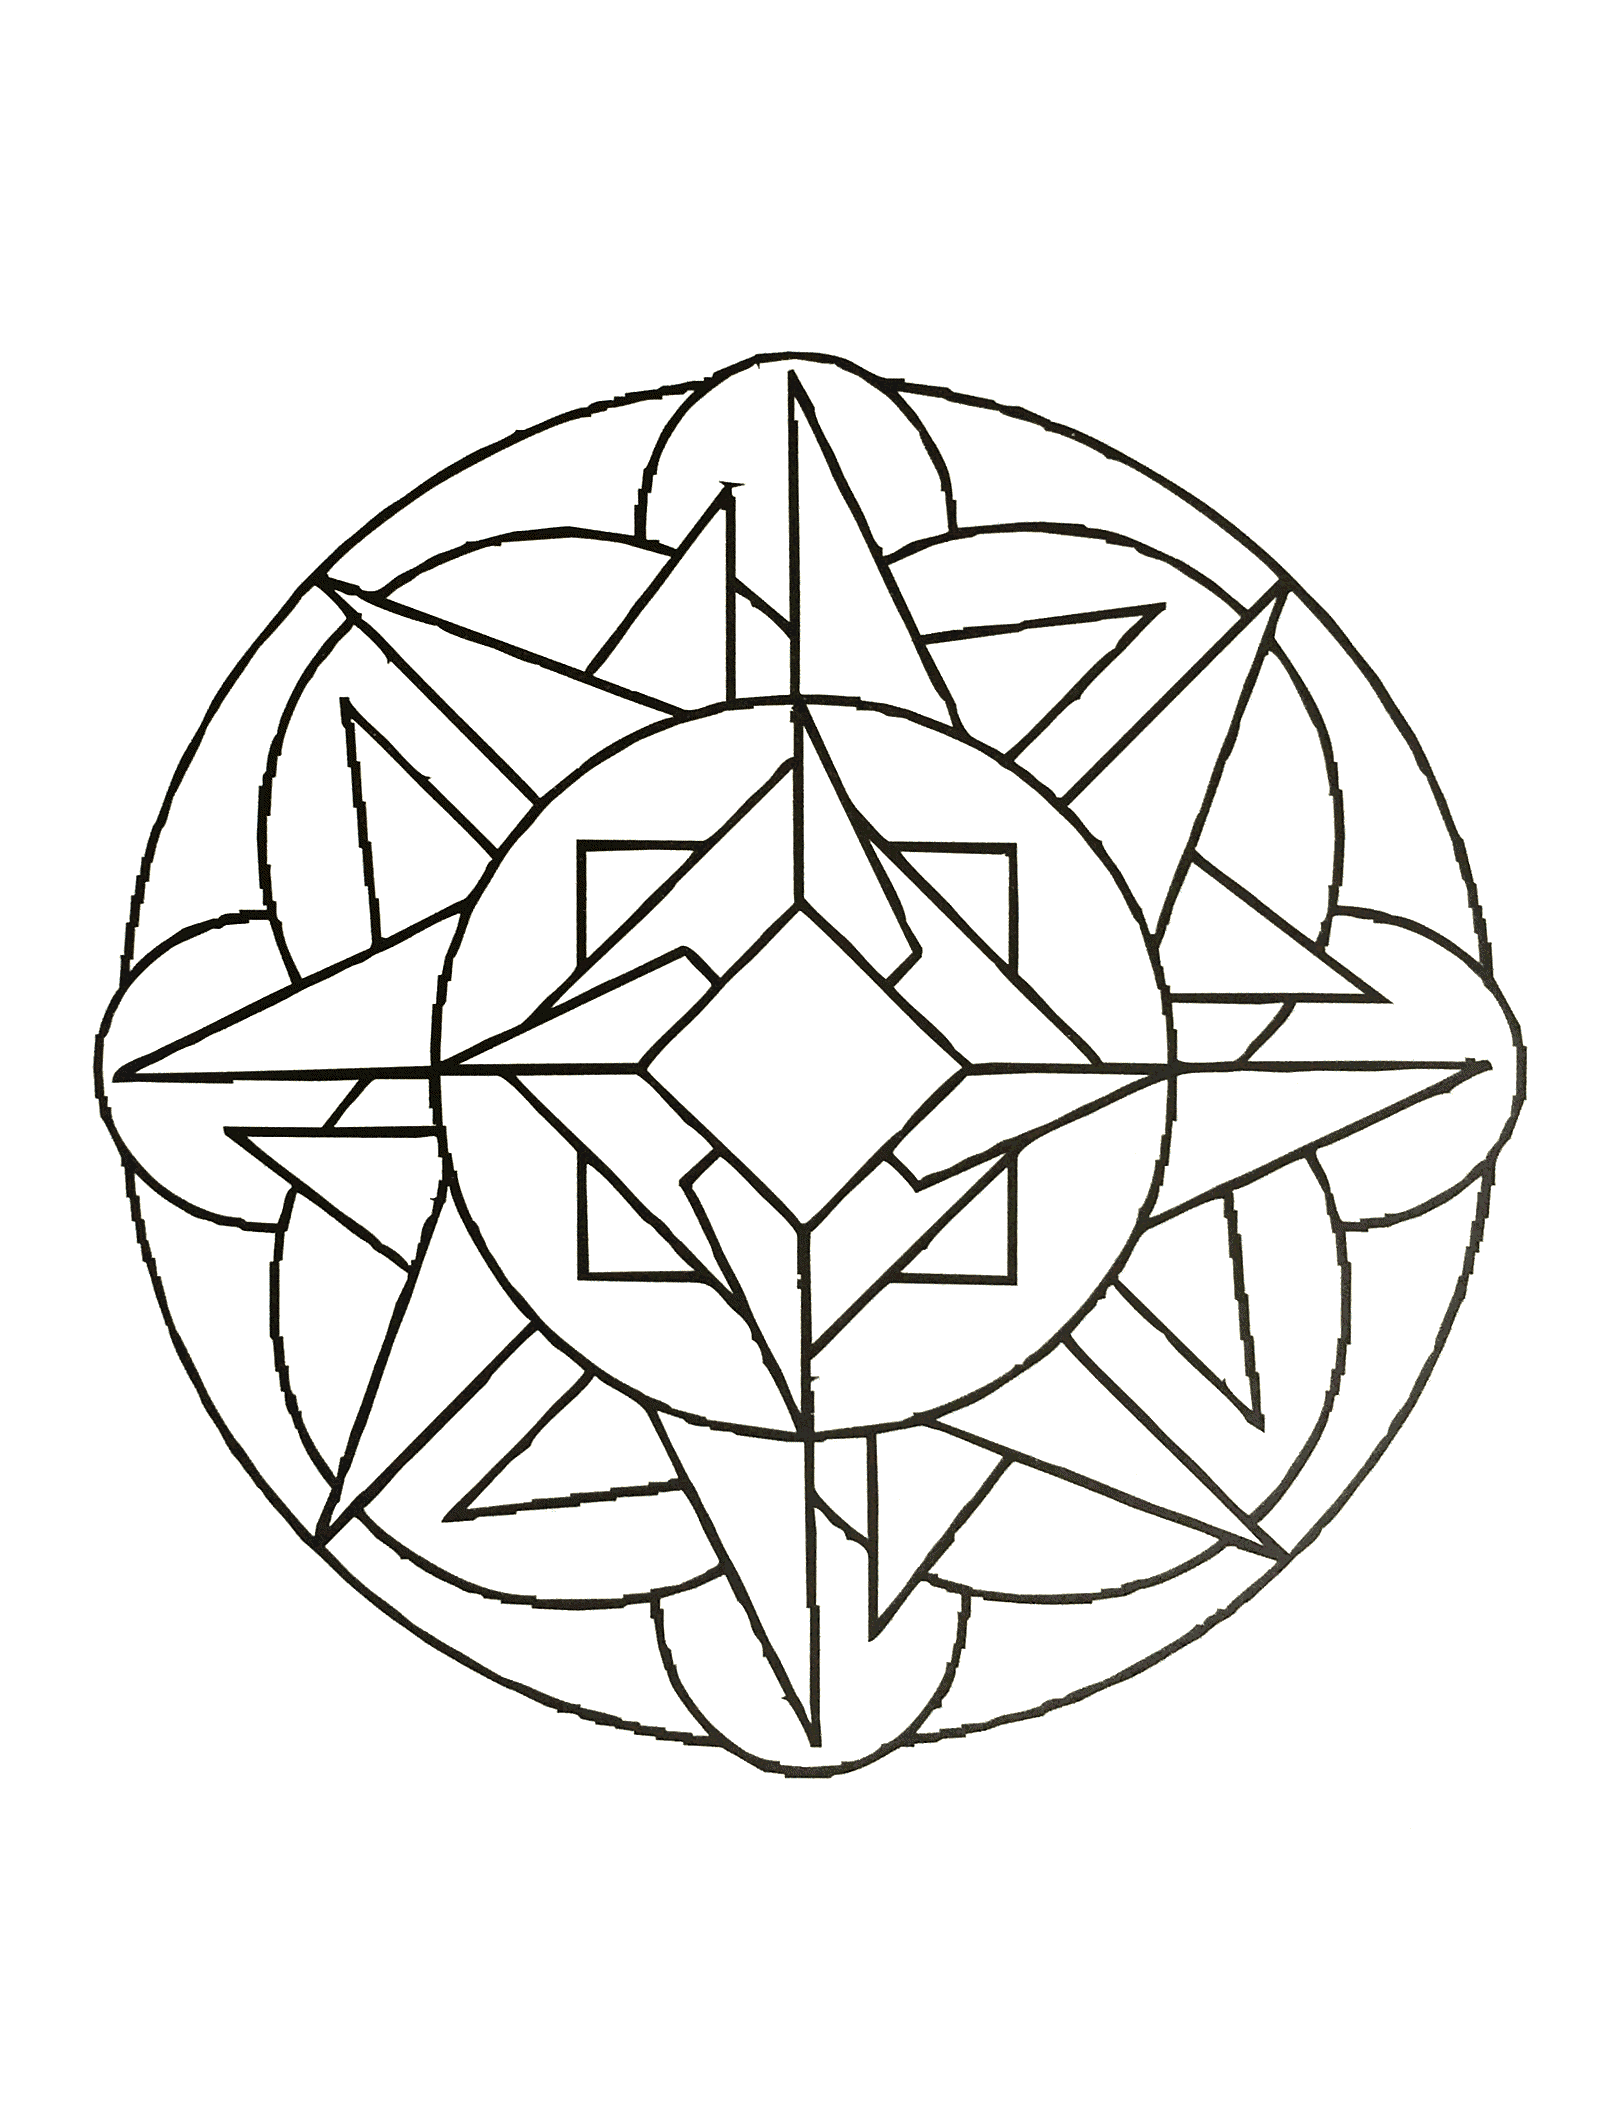 Simple mandala 56 - M&alas Coloring pages for kids to print & color